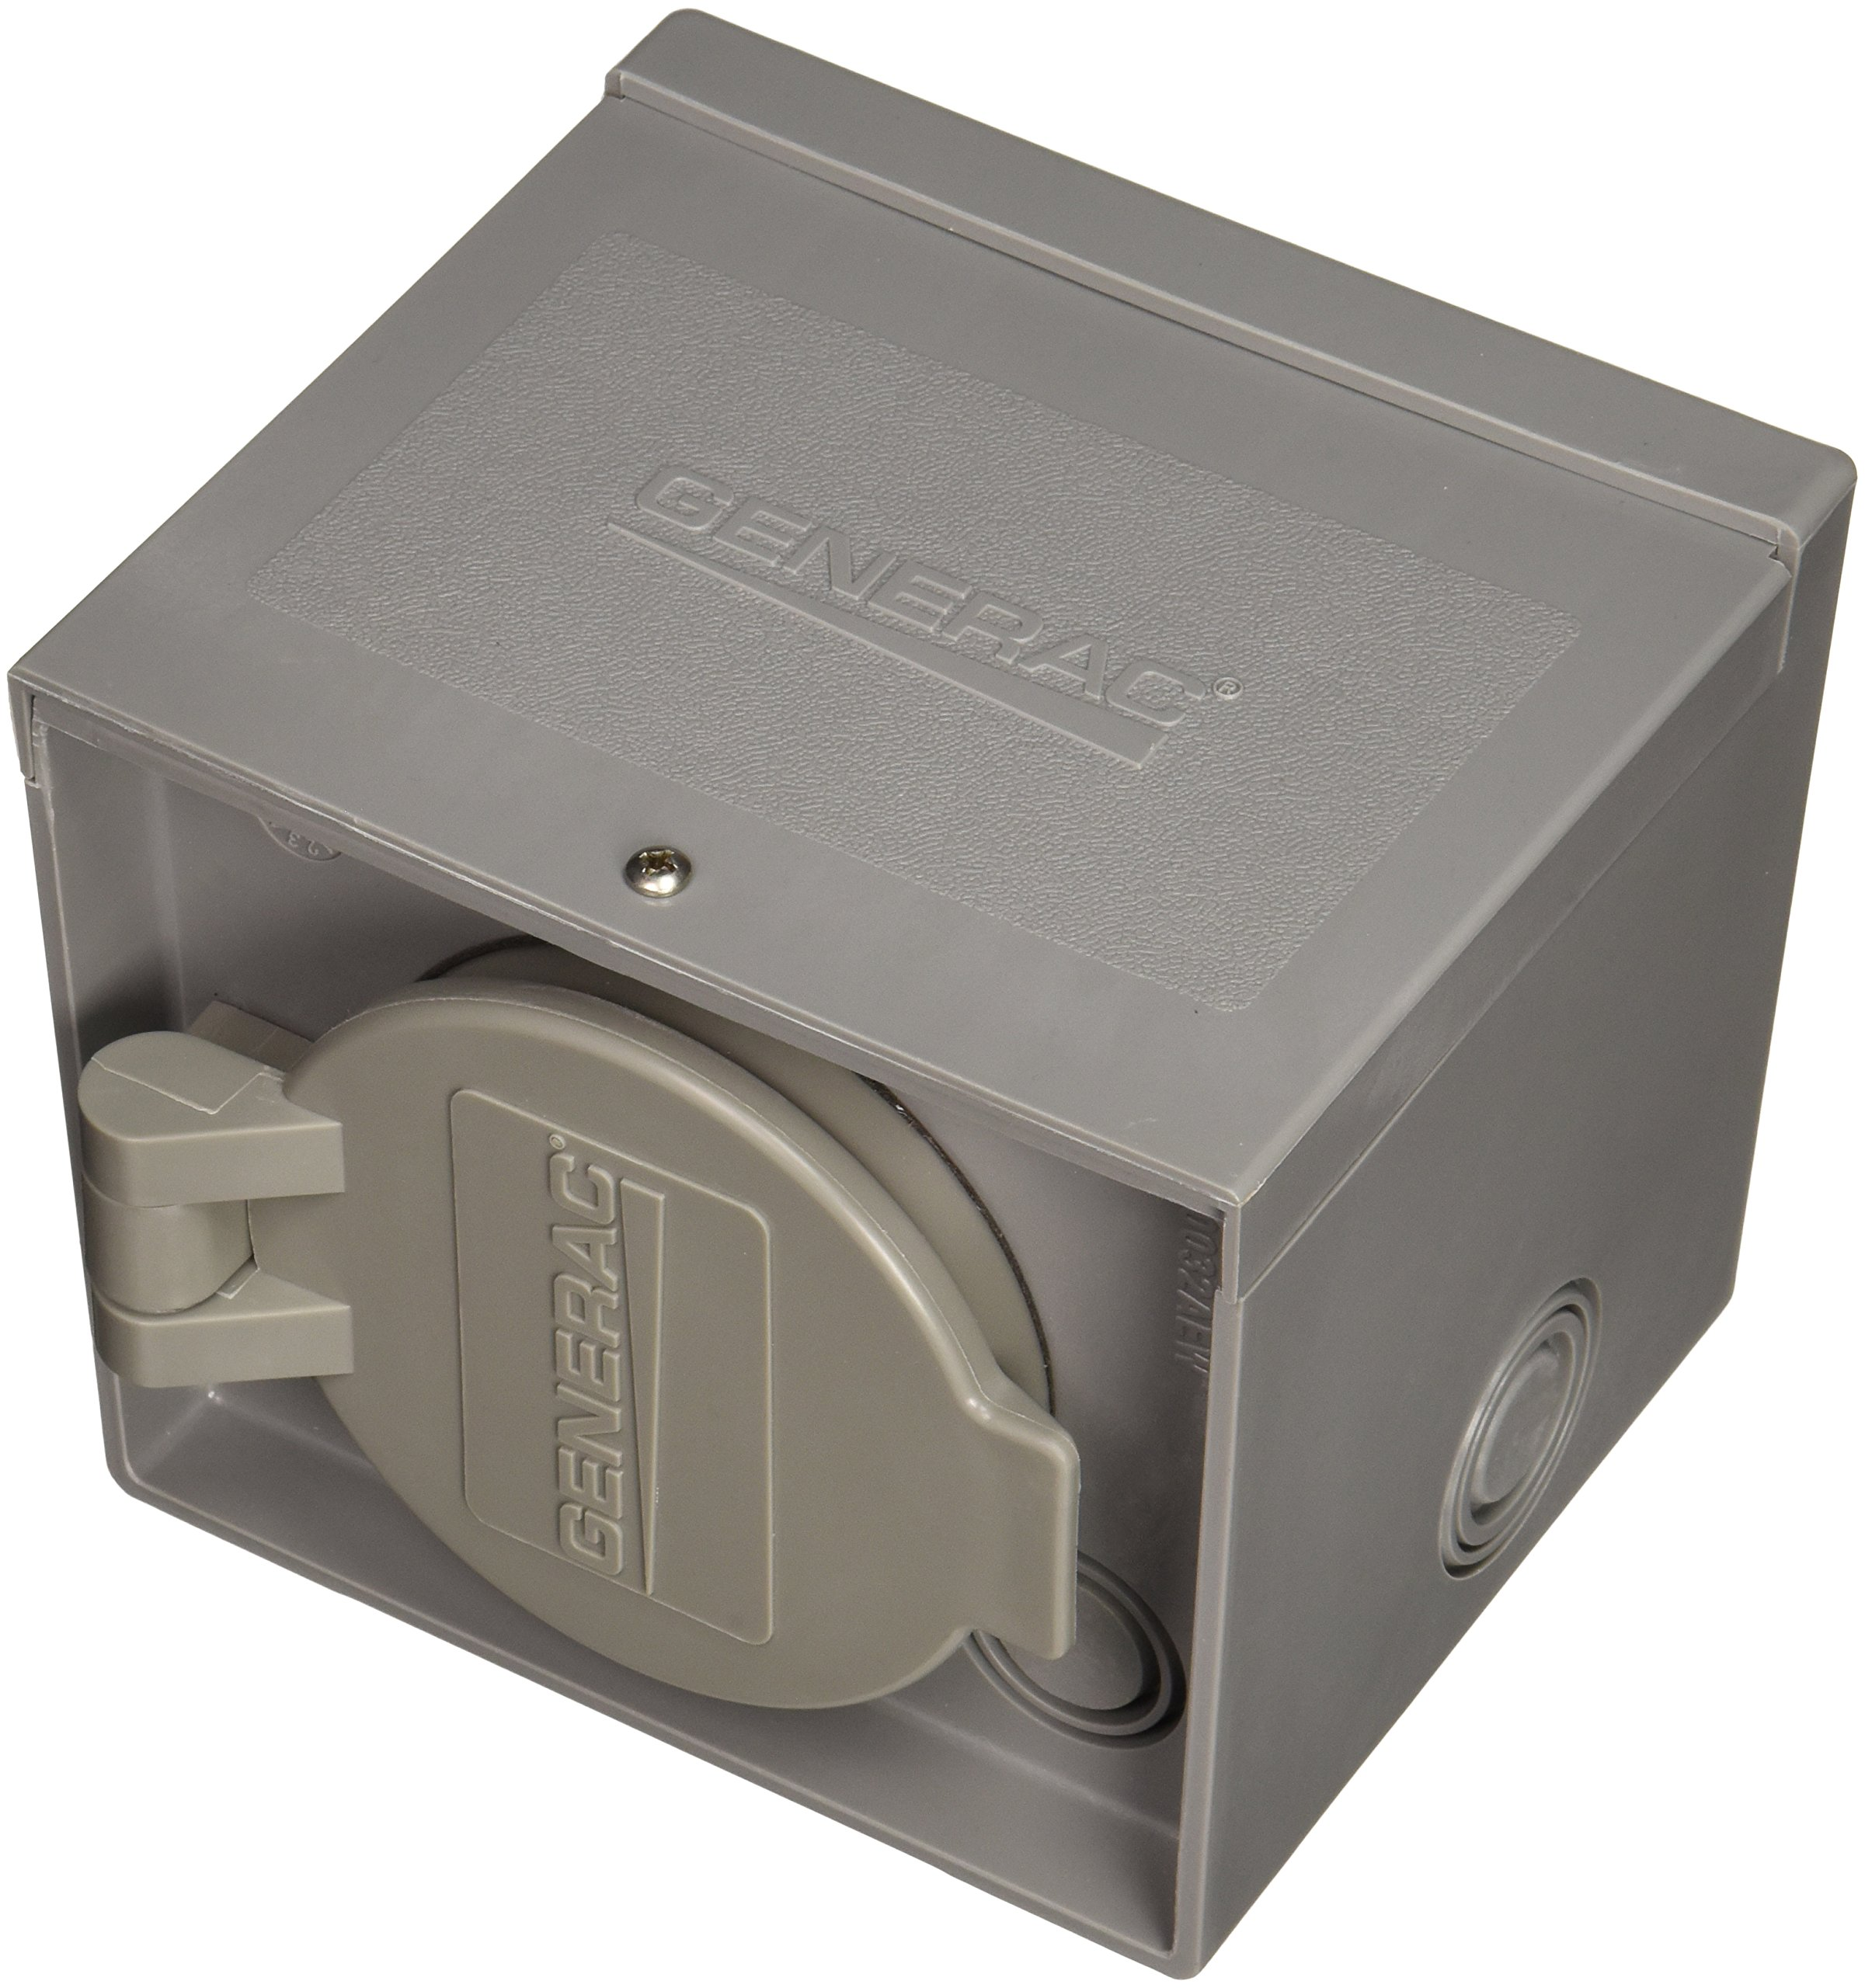 Generac 6340 30-Amp 125/250V Raintight Power Inlet Box with Spring-Loaded Flip Lid by Generac